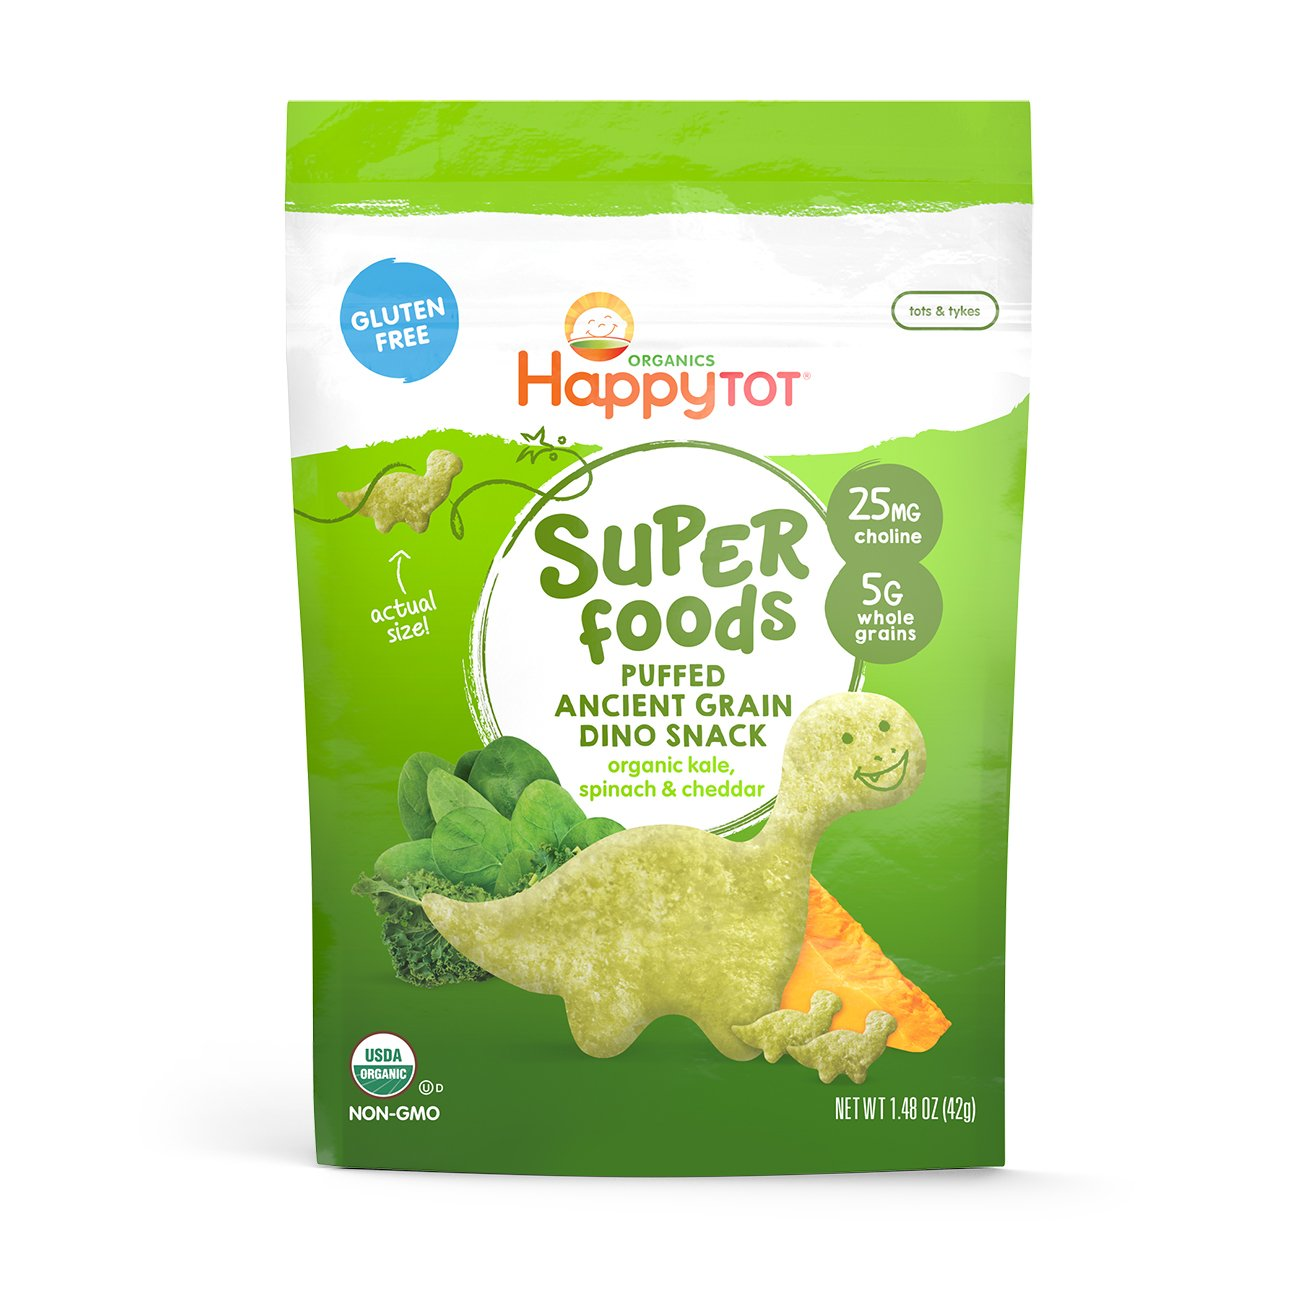 Happy Tot Organic Super Foods Puffed Grain Dino Snacks Kale Spinach & Cheddar, 1.48 Ounce Bag (Pack of 8) Organic Dinosaur-Shaped Toddler Snacks w/ Quinoa & Amaranth, 25mg Choline 5g Whole Grains